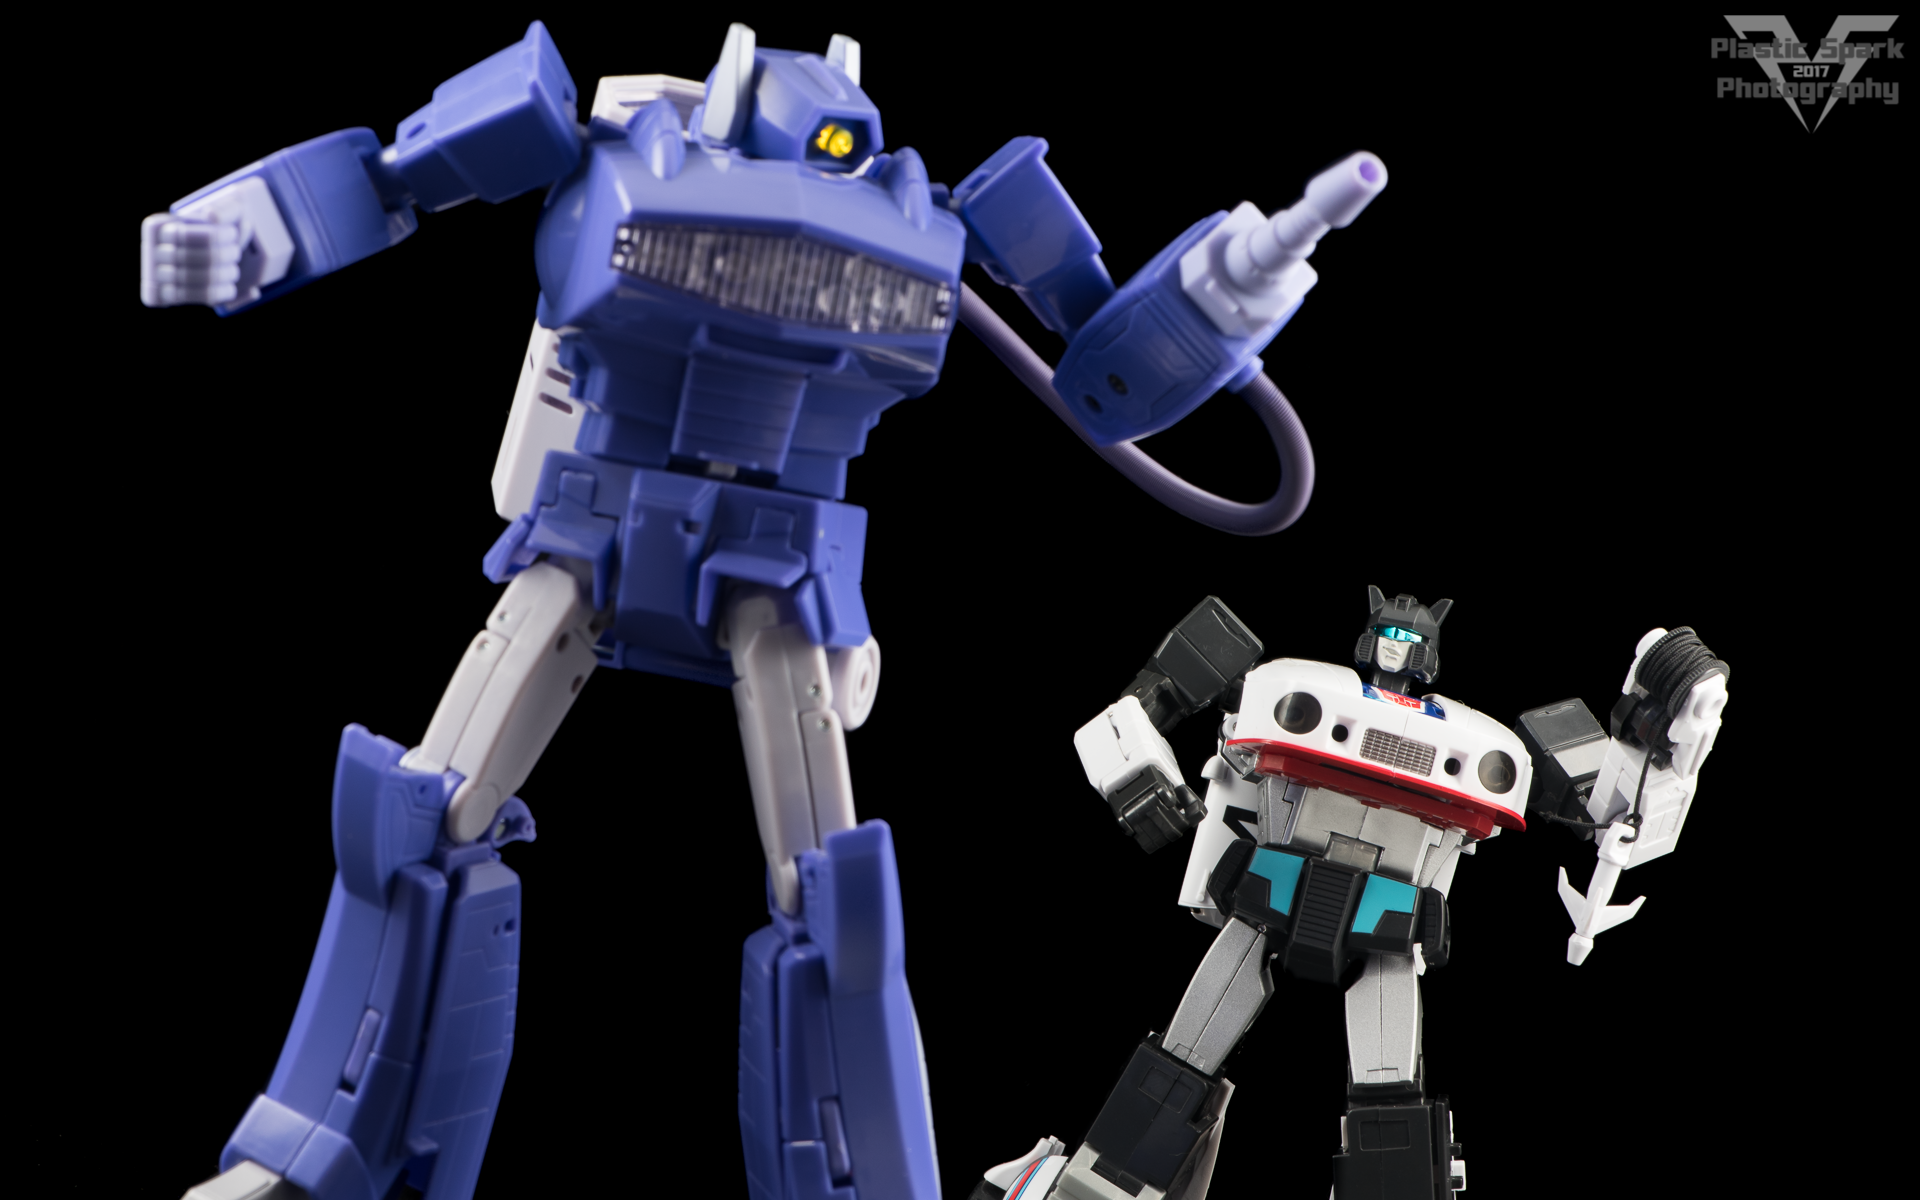 MakeToys-Re-Master-MTRM-09-Downbeat--(22-of-42).png